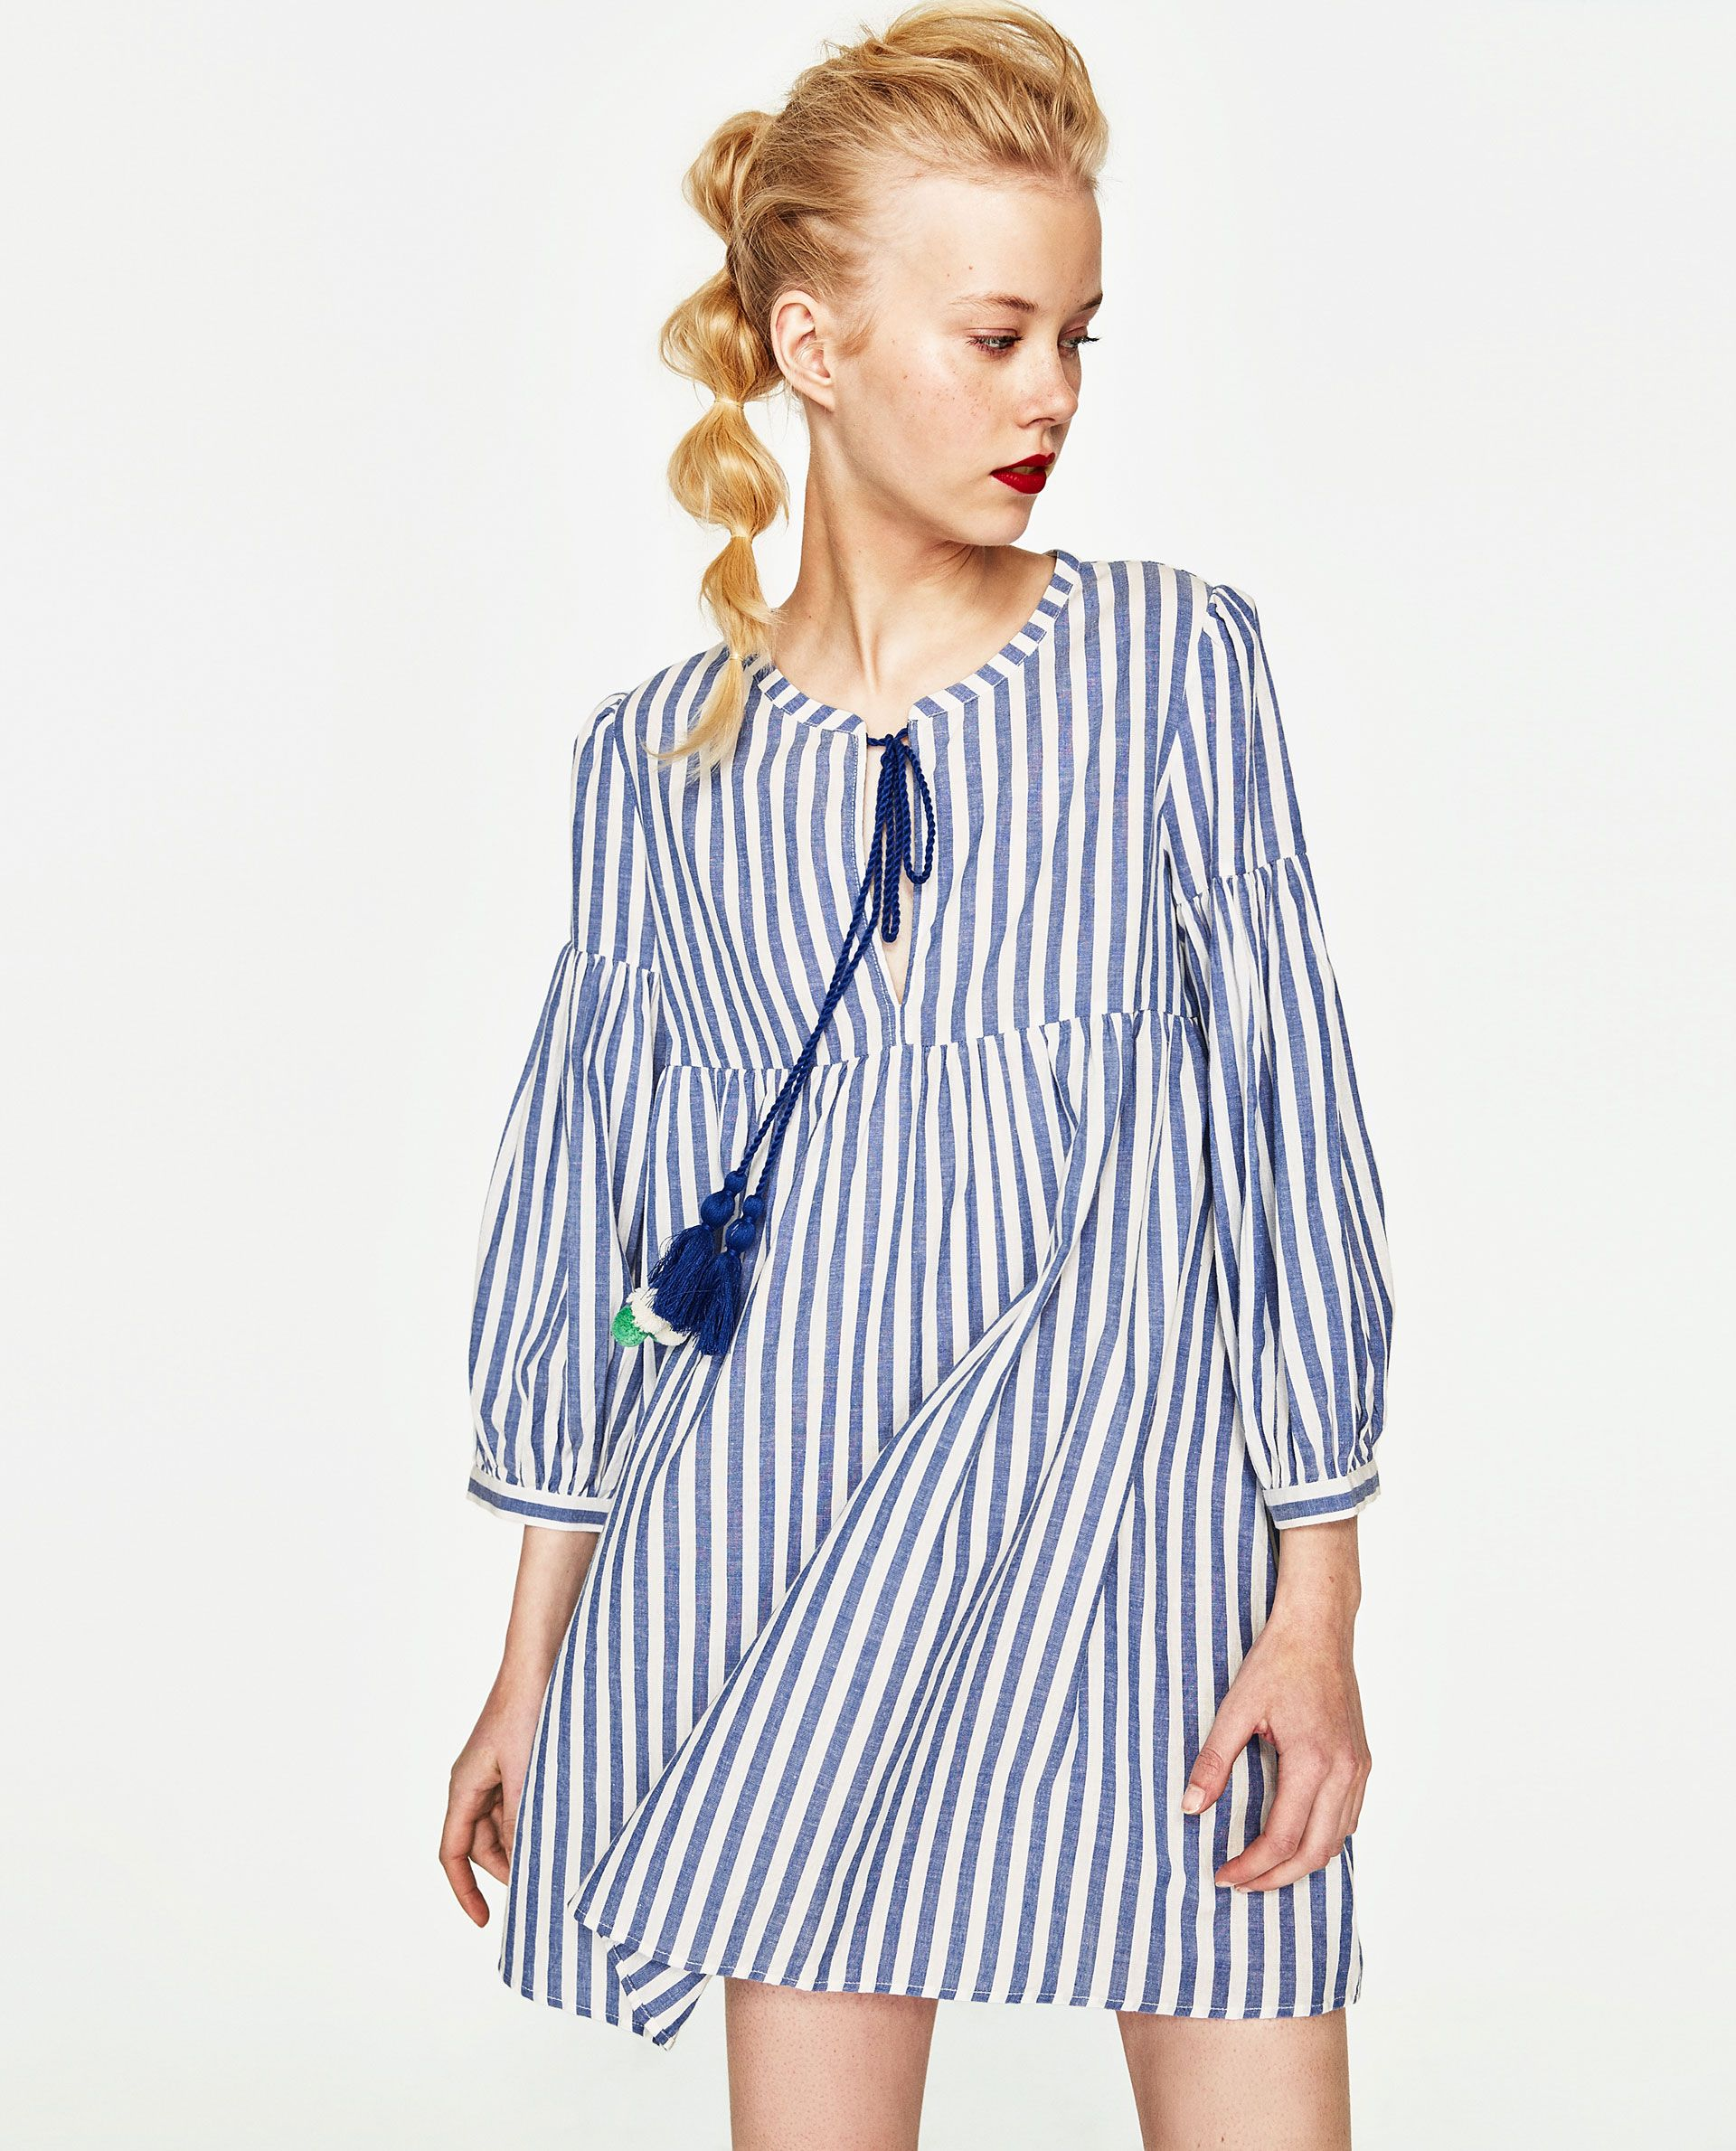 274b0d8d Image 2 of STRIPED DRESS WITH POMPOMS from Zara | clothes i covet ...